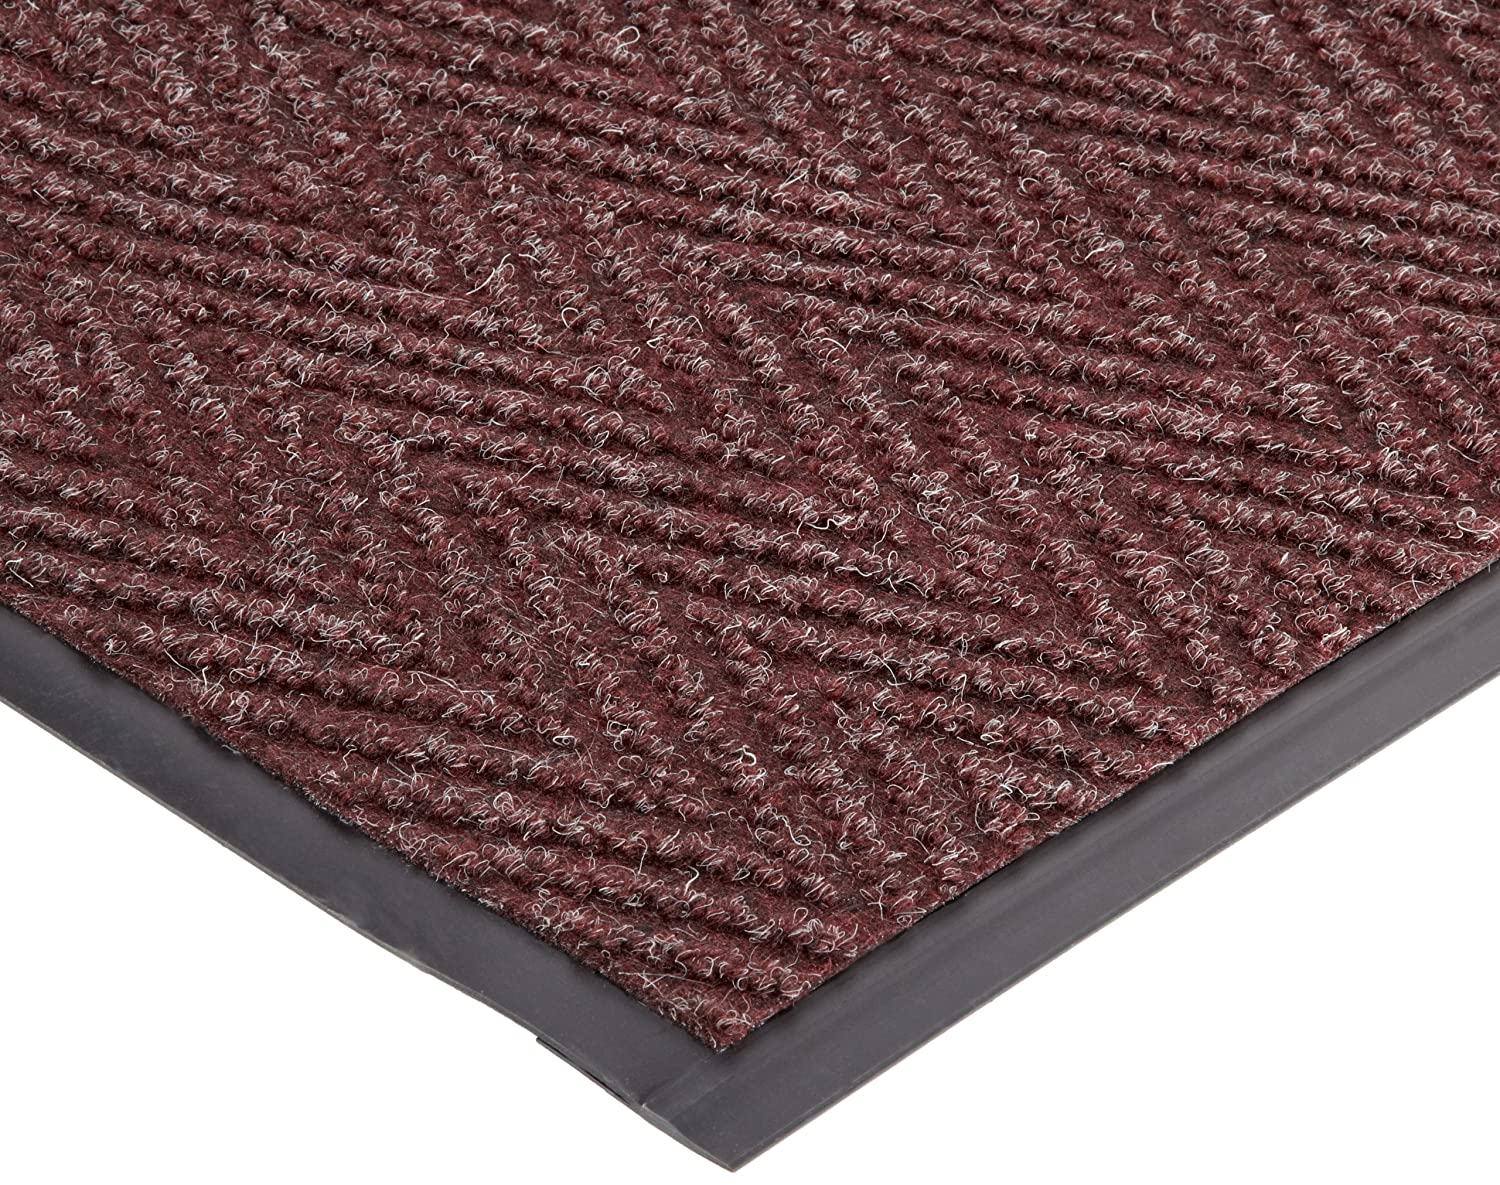 Durable Vinyl Chevron Rib Indoor Entrance Mat, 4' x 8', Charcoal 4' x 8' Durable Corporation 614S48CH